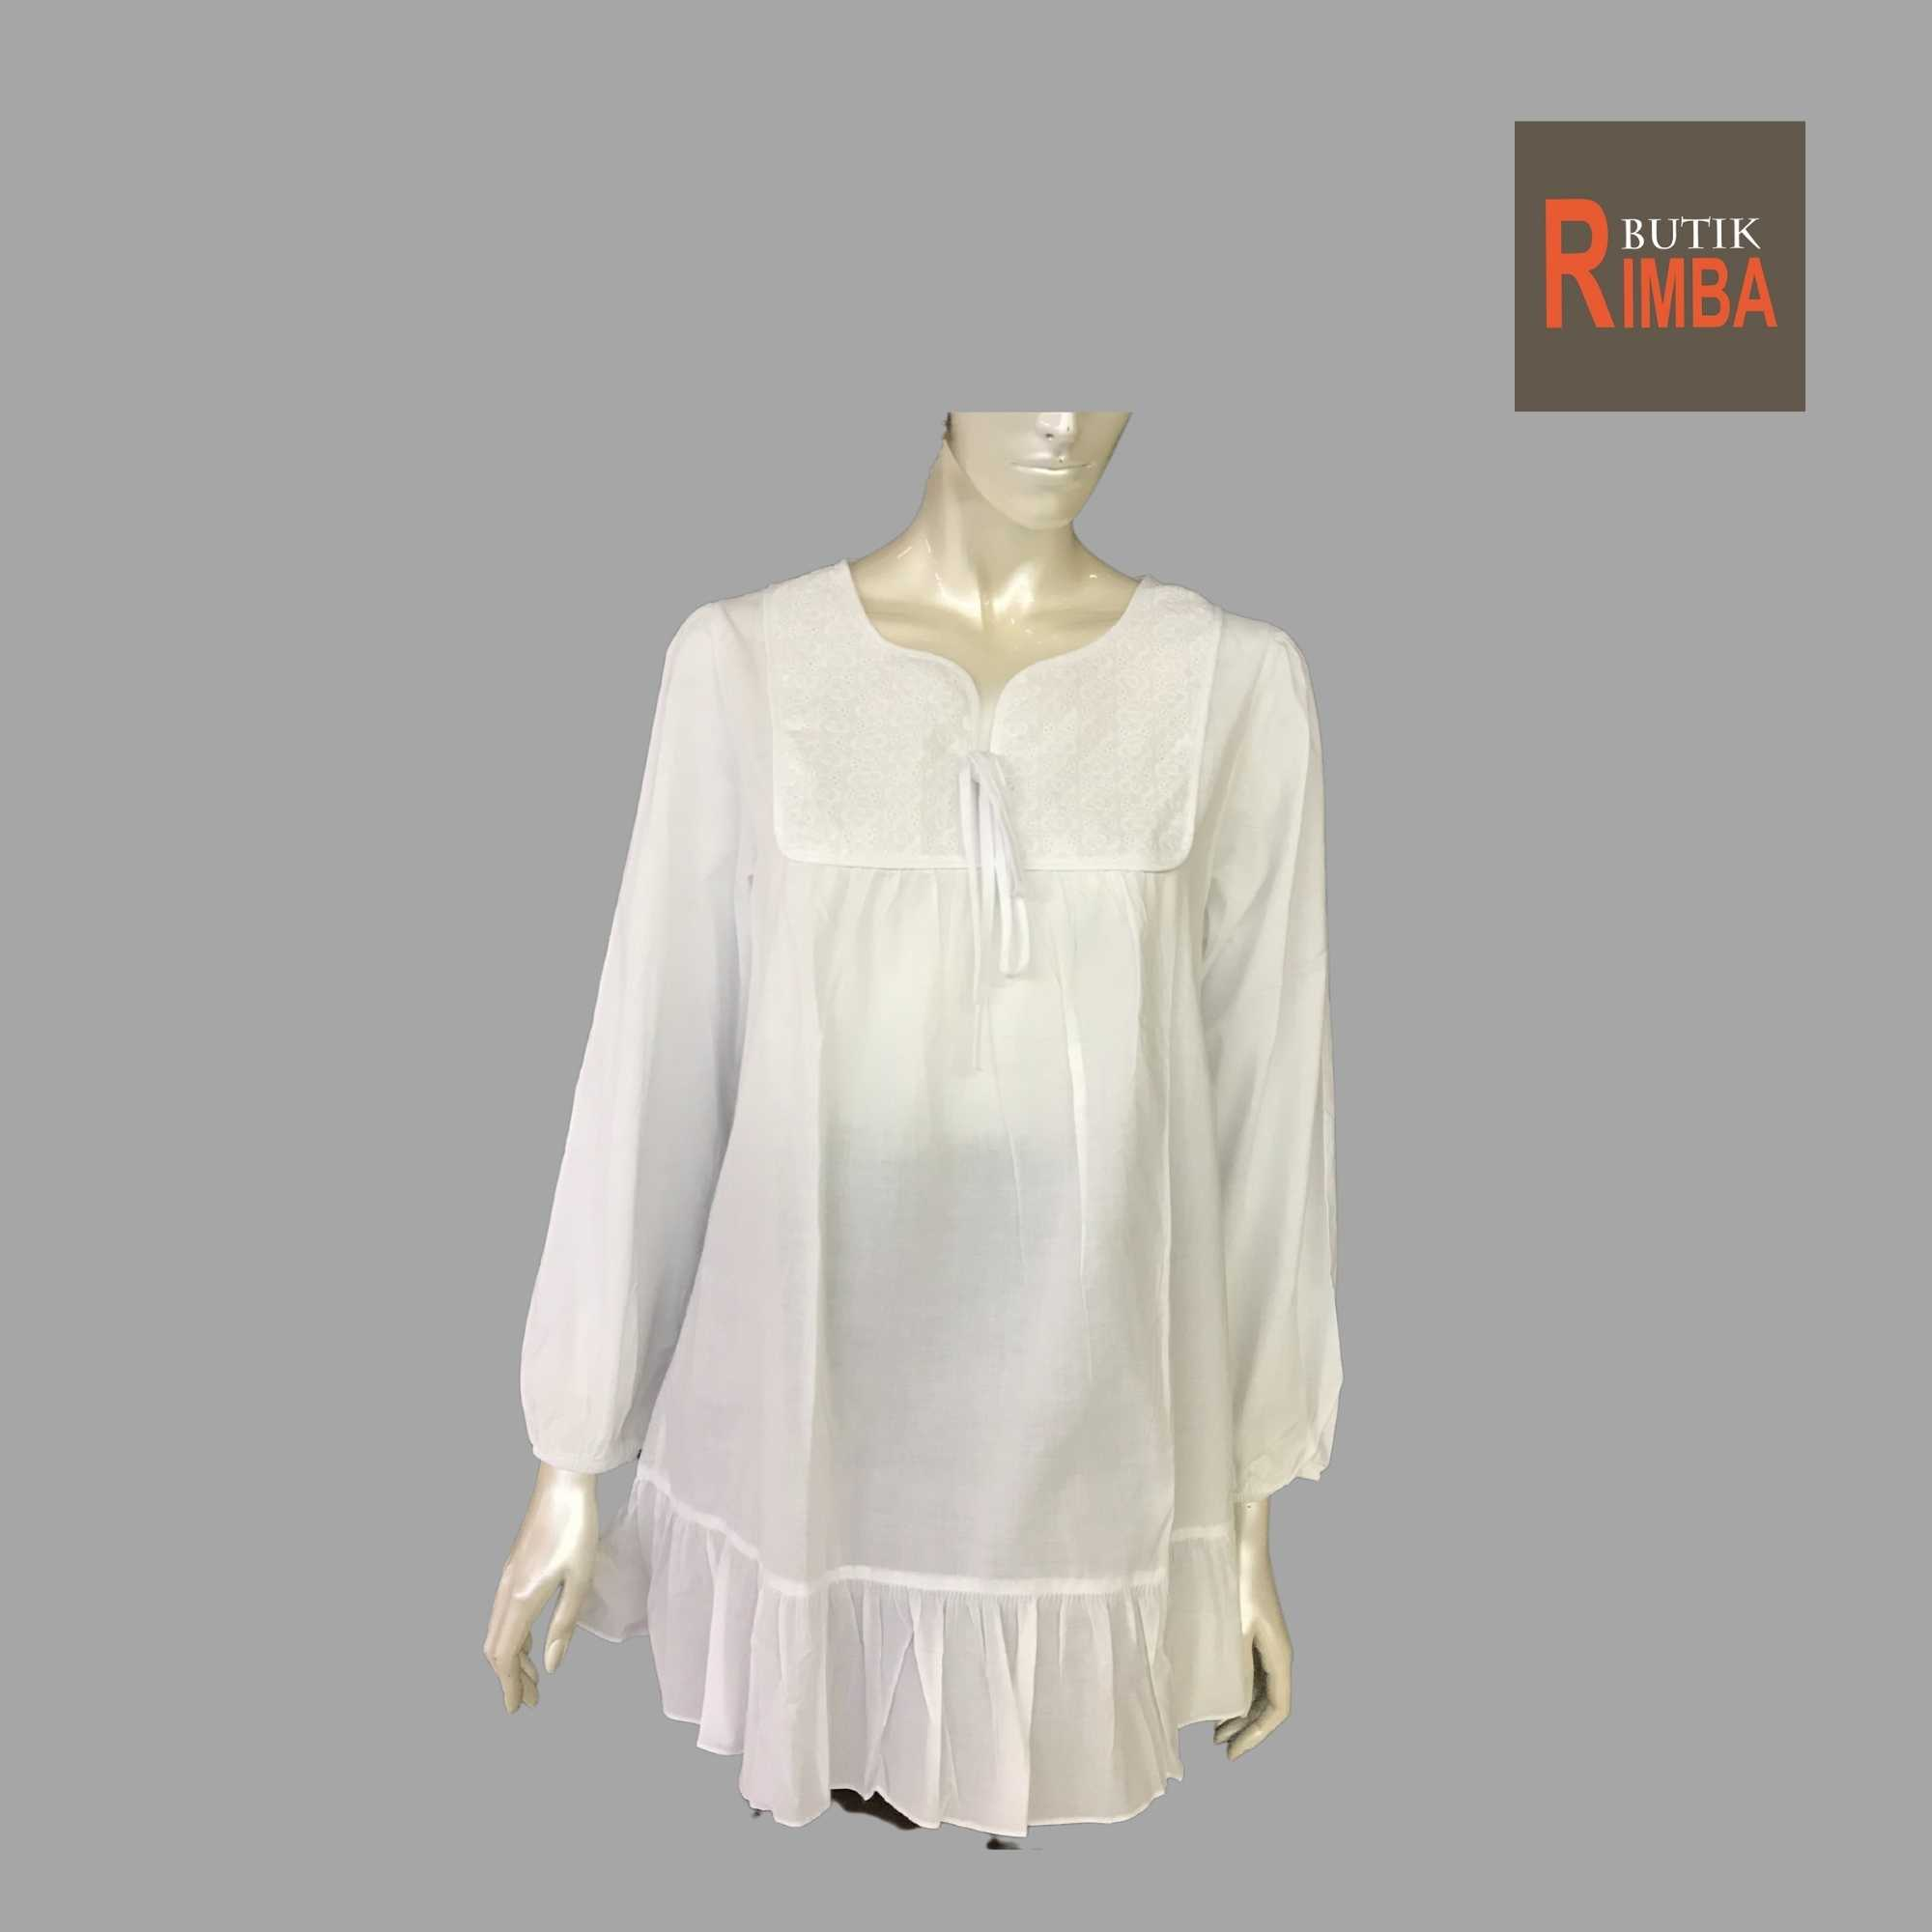 WOMEN CASUAL AND COMFORTABLE WHITE BLOUSE COTTON FREE SIZE PATTERN 15